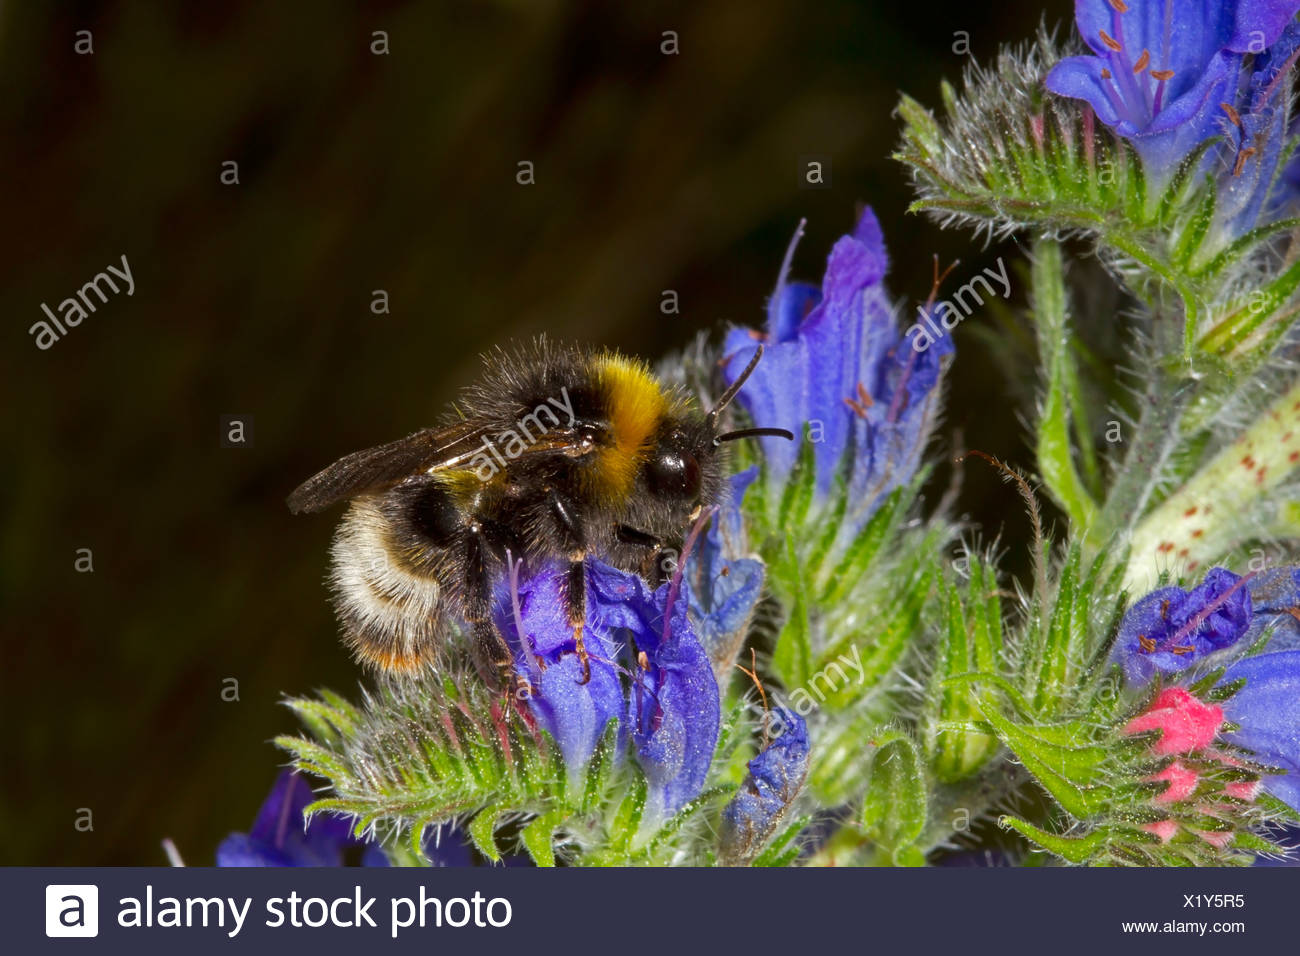 Forest or Four-coloured Cuckoo Bumblebee - Bombus sylvestris - Stock Image